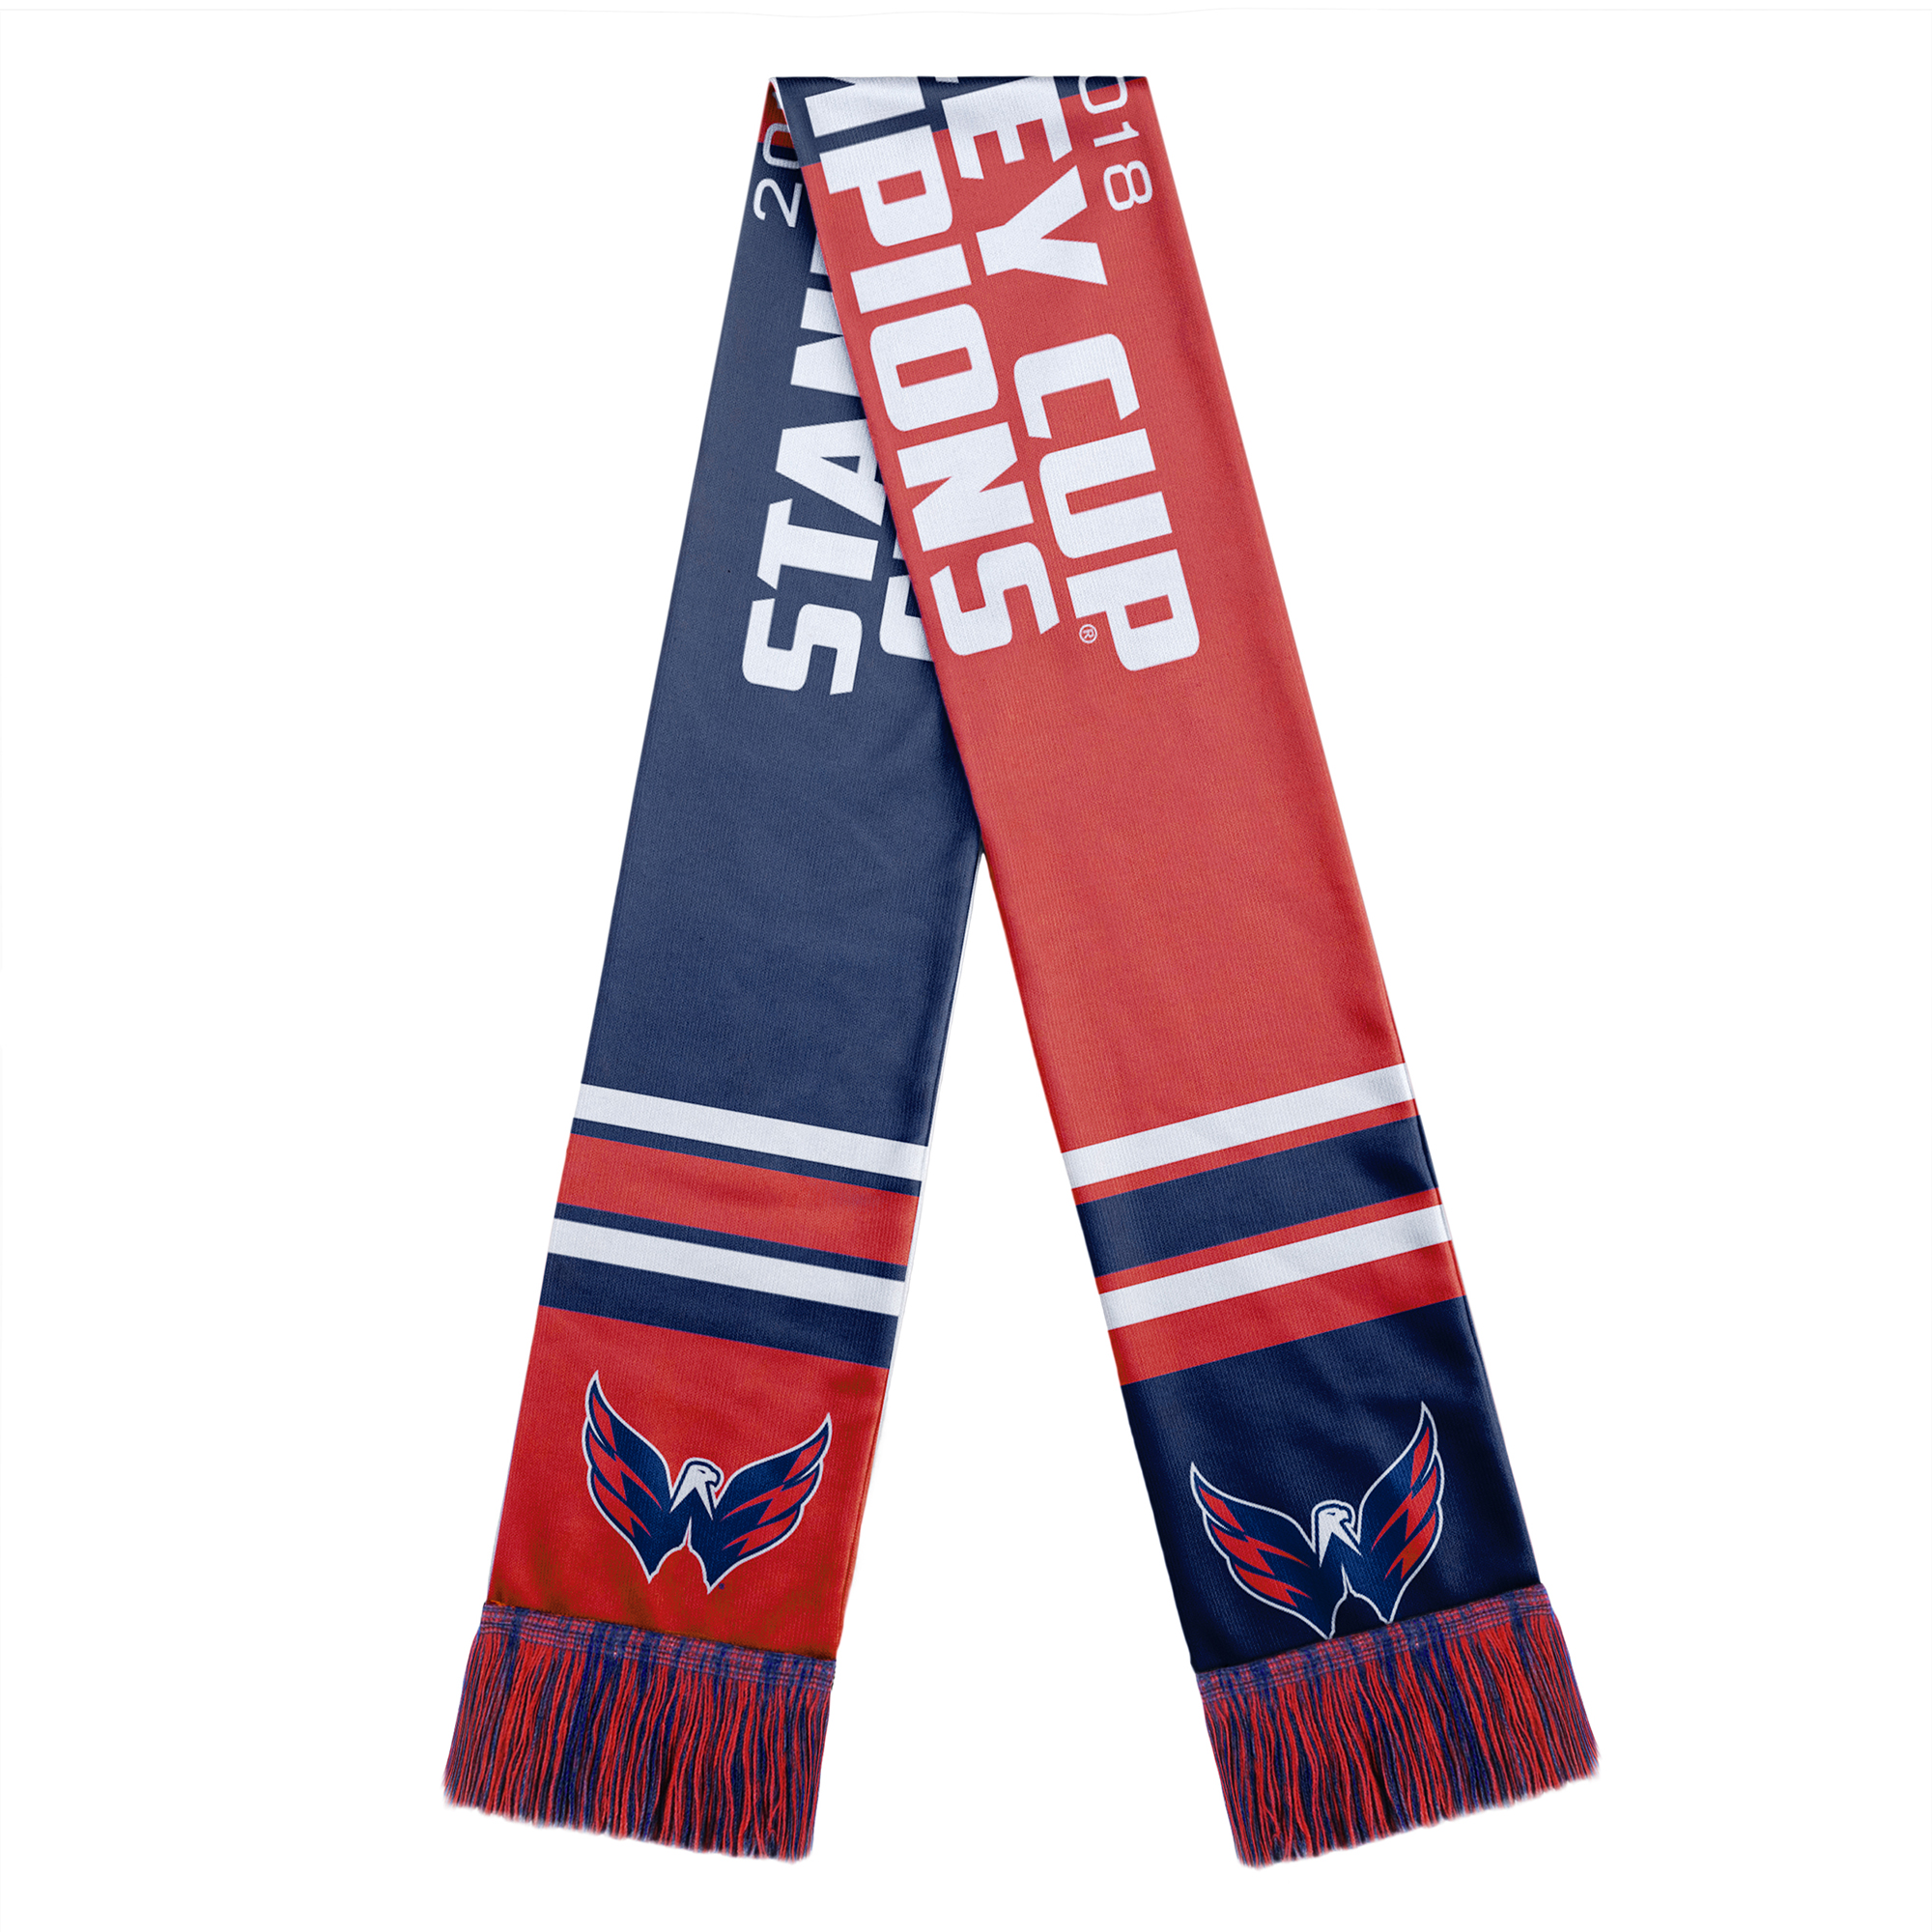 Washington Capitals 2018 Stanley Cup Champions Acrylic Scarf - Red - No Size